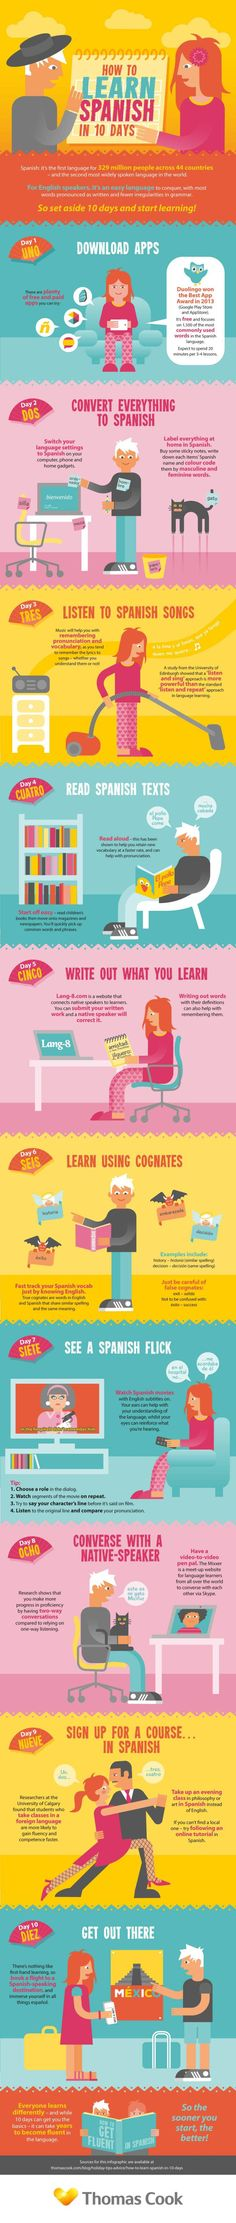 How To Learn Spanish In 10 Days Infographic